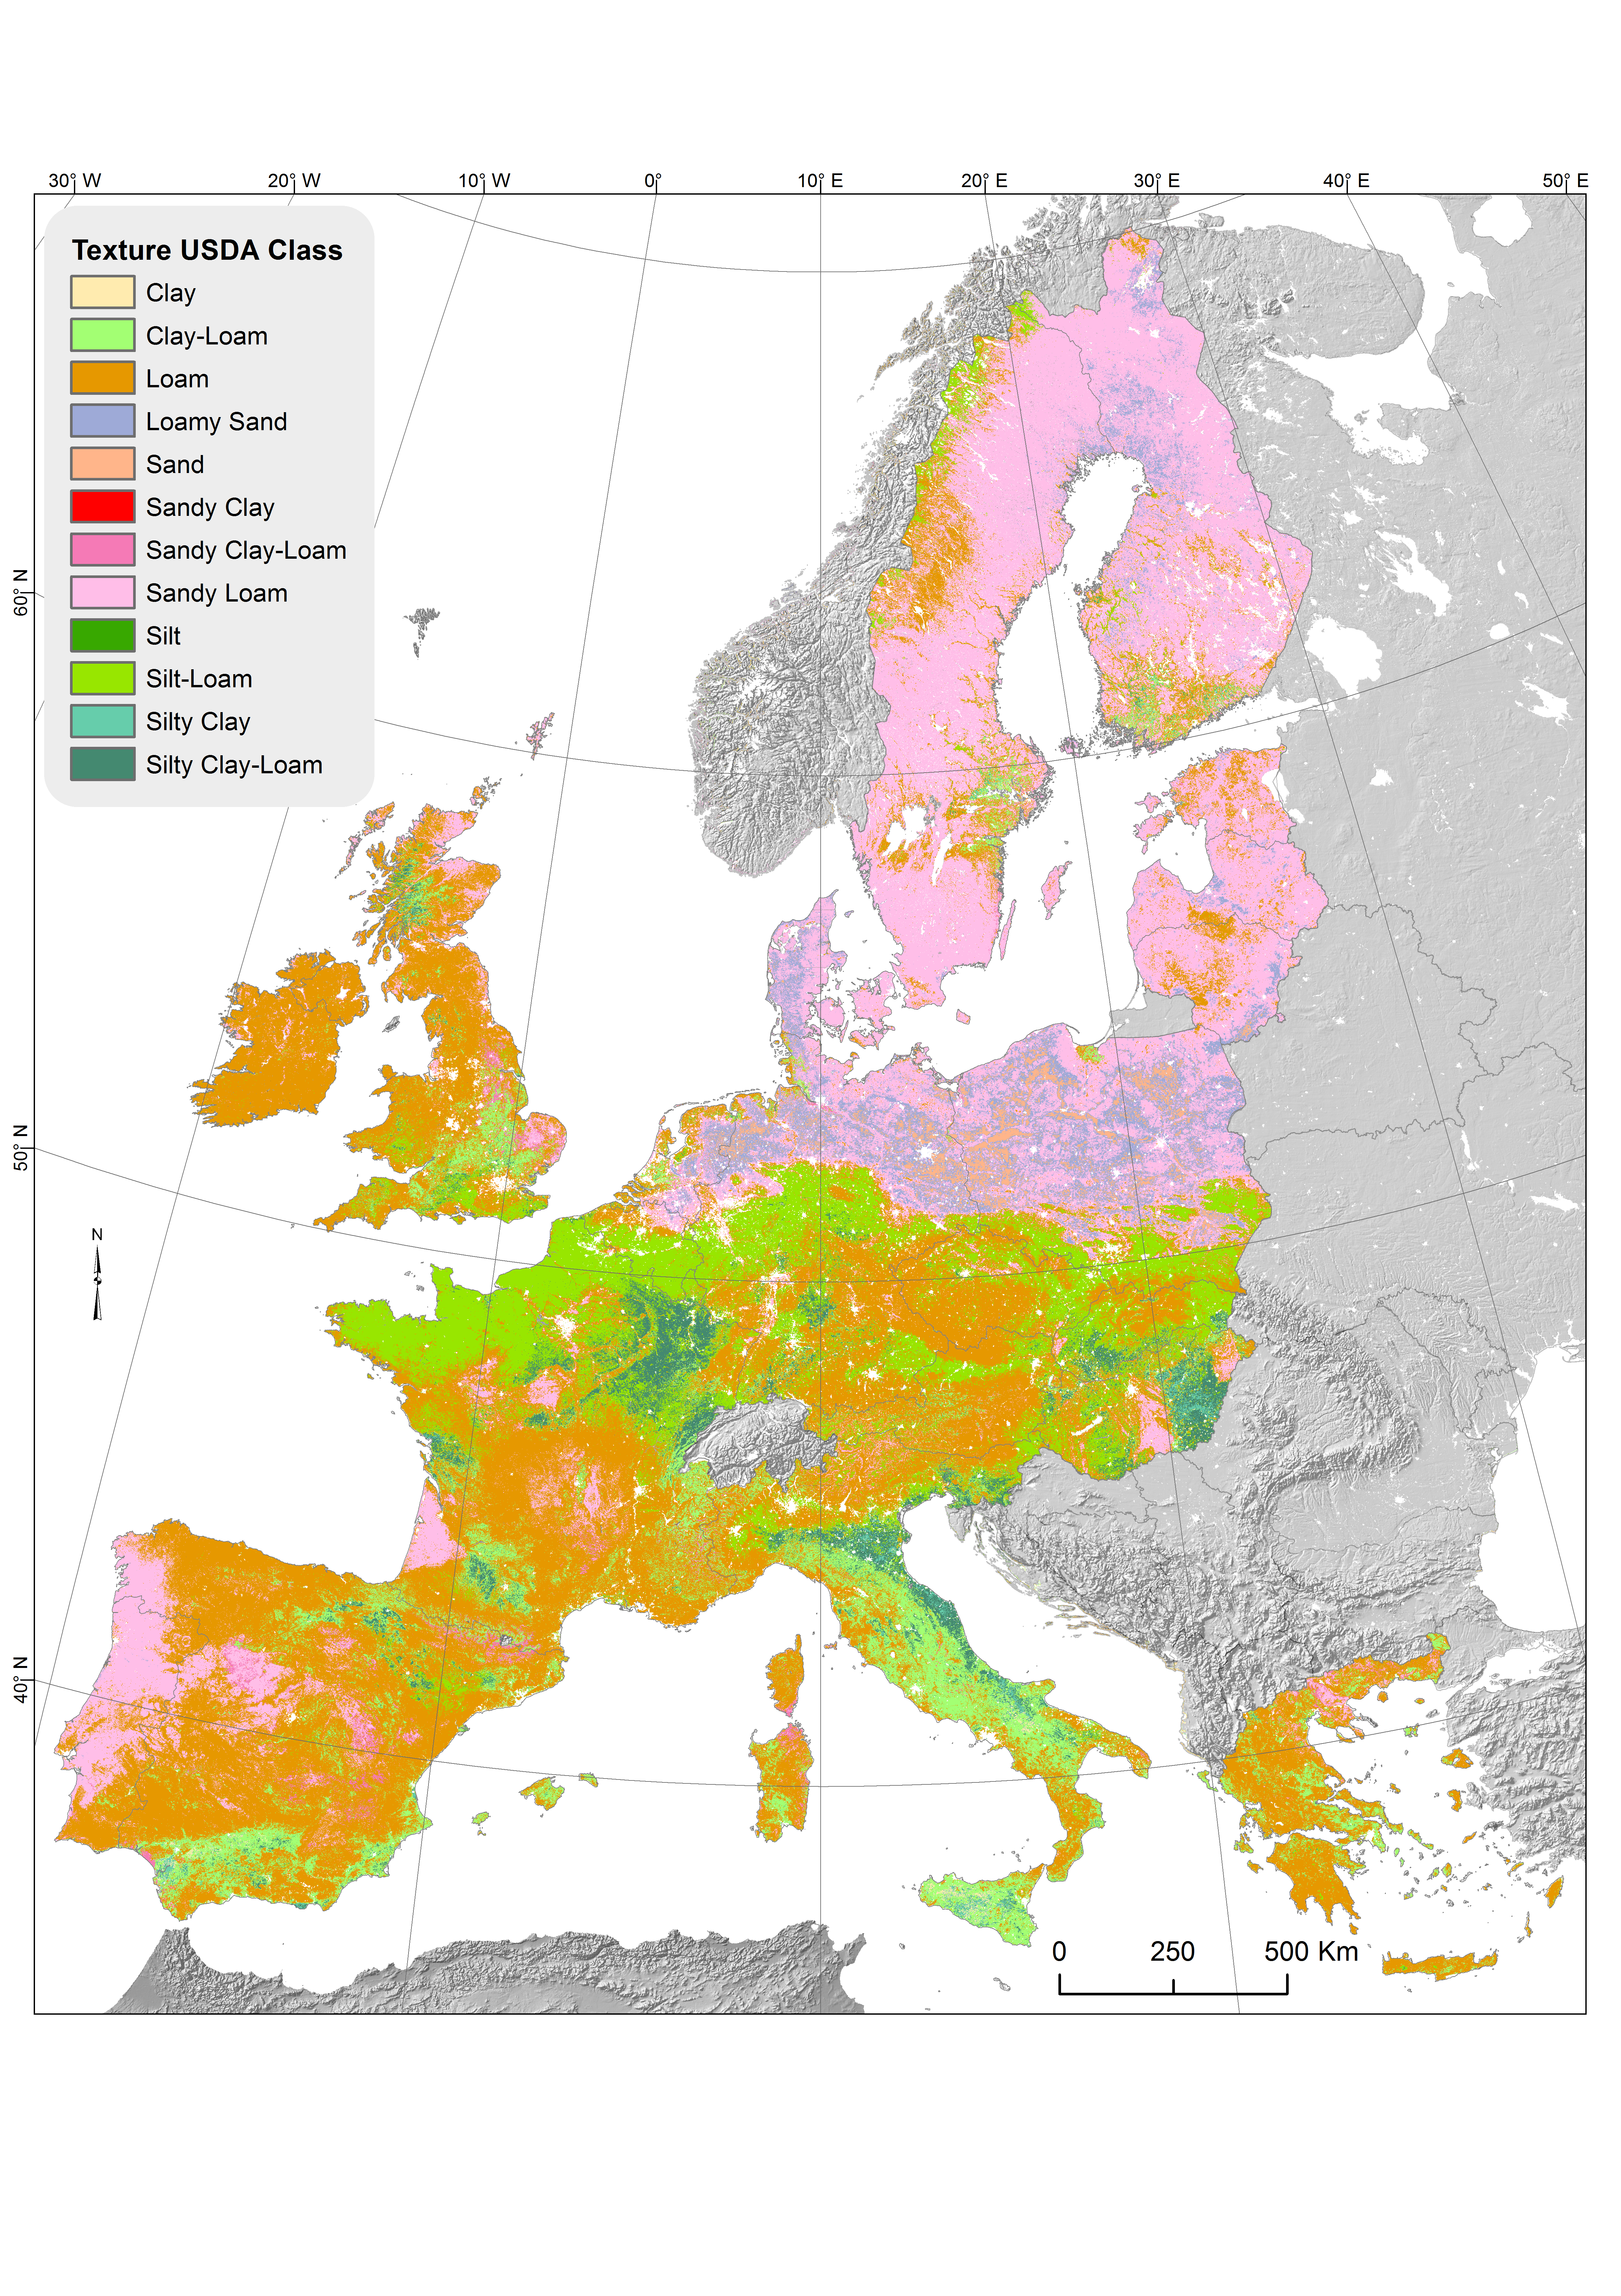 map of europe high resolution with Soil Data Maps on Map Ok With Yukon Pawhuska Bartlesville in addition Railway Maps together with 1s6r in addition Map Of Southeast Georgia Usa in addition Attraction Review G187870 D545828 Reviews Dorsoduro Venice Ve o.